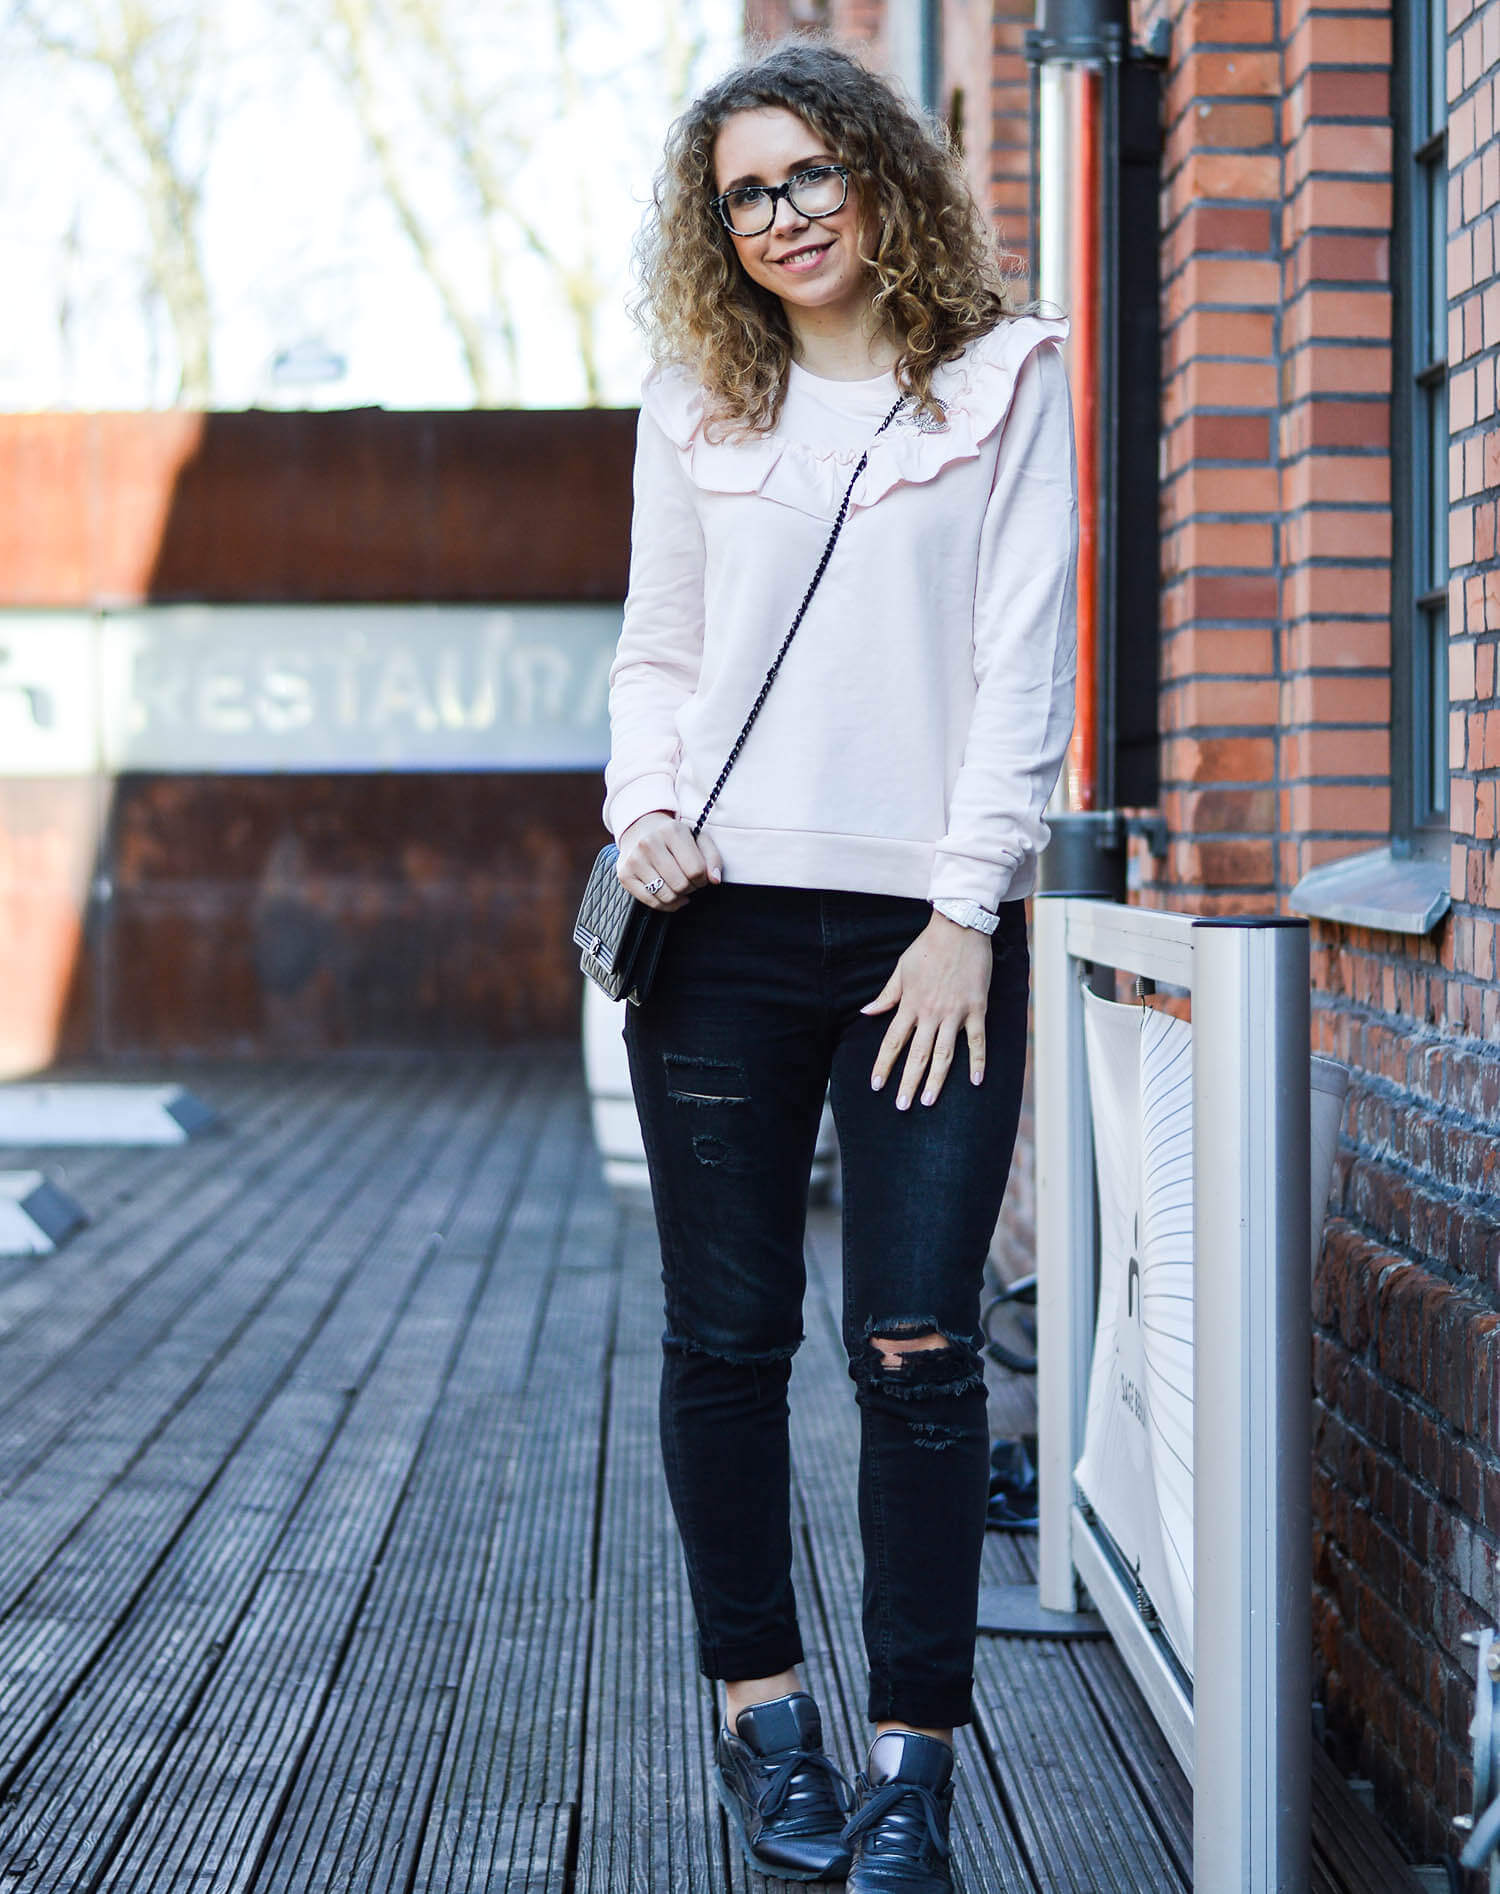 Kationette-fashionblog-nrw-Outfit-Volant-Sweater-Ripped-Jeans-Chanel-Boy-WOC-berlin